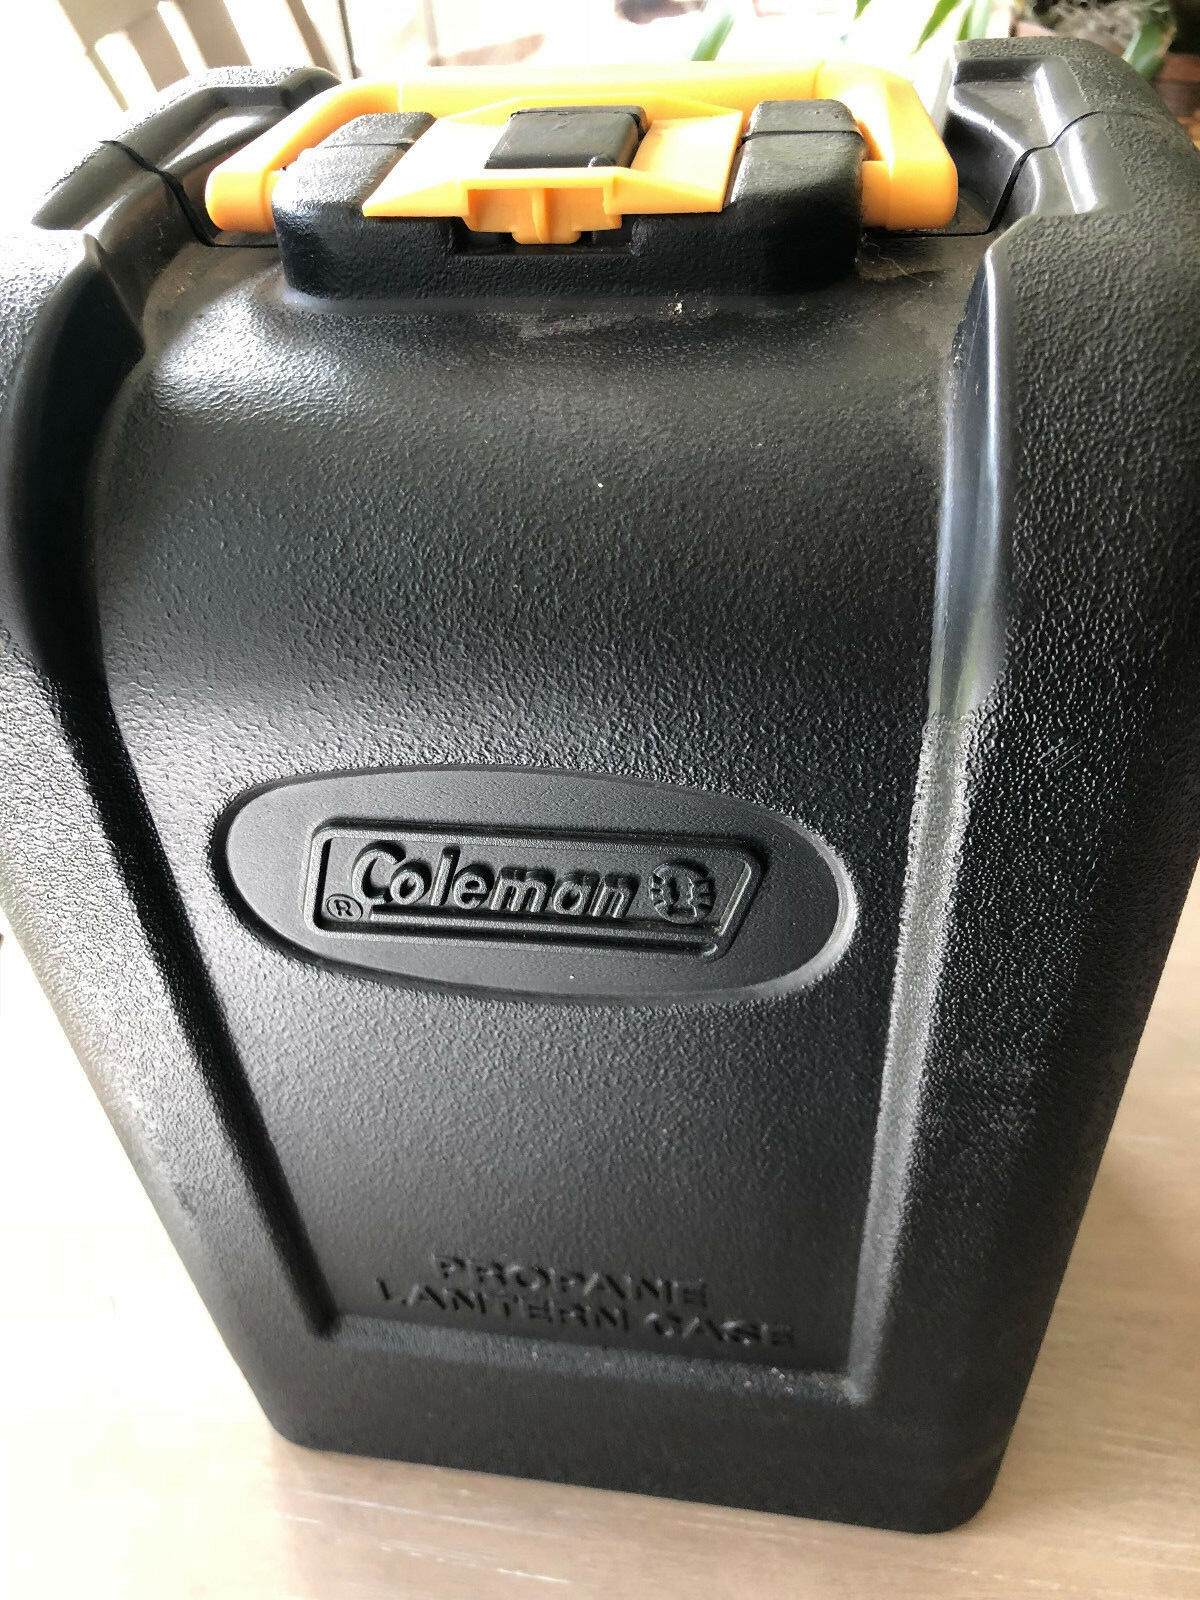 COLEMAN PROPANE LANTERN   TWIN MANTLE, ELECTRIC IGNITION, & CASE  discount sale